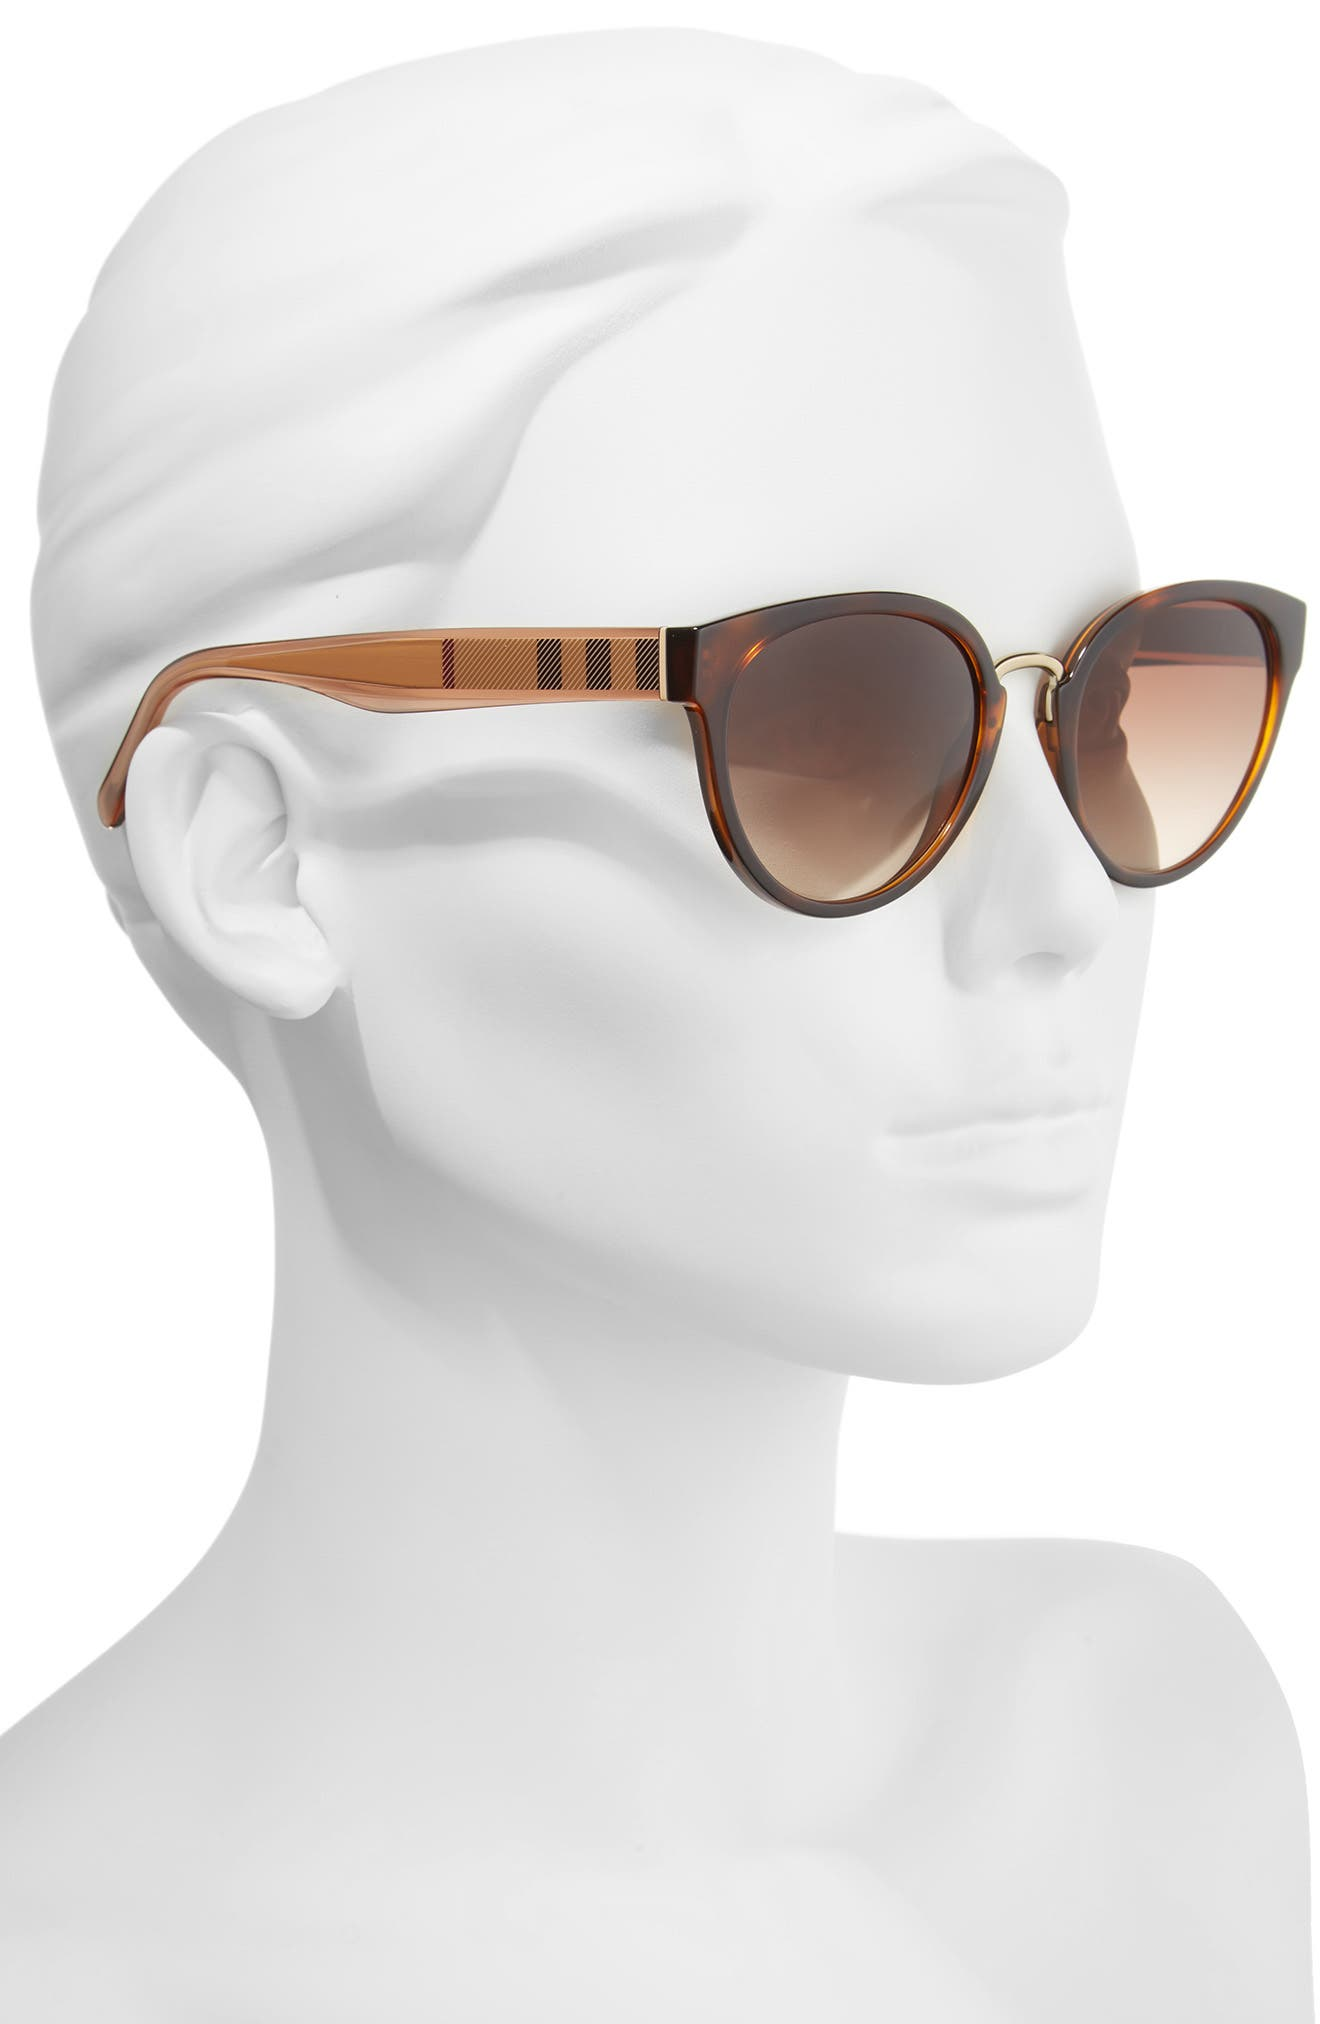 53mm Gradient Cat Eye Sunglasses,                             Alternate thumbnail 2, color,                             Brown Havana